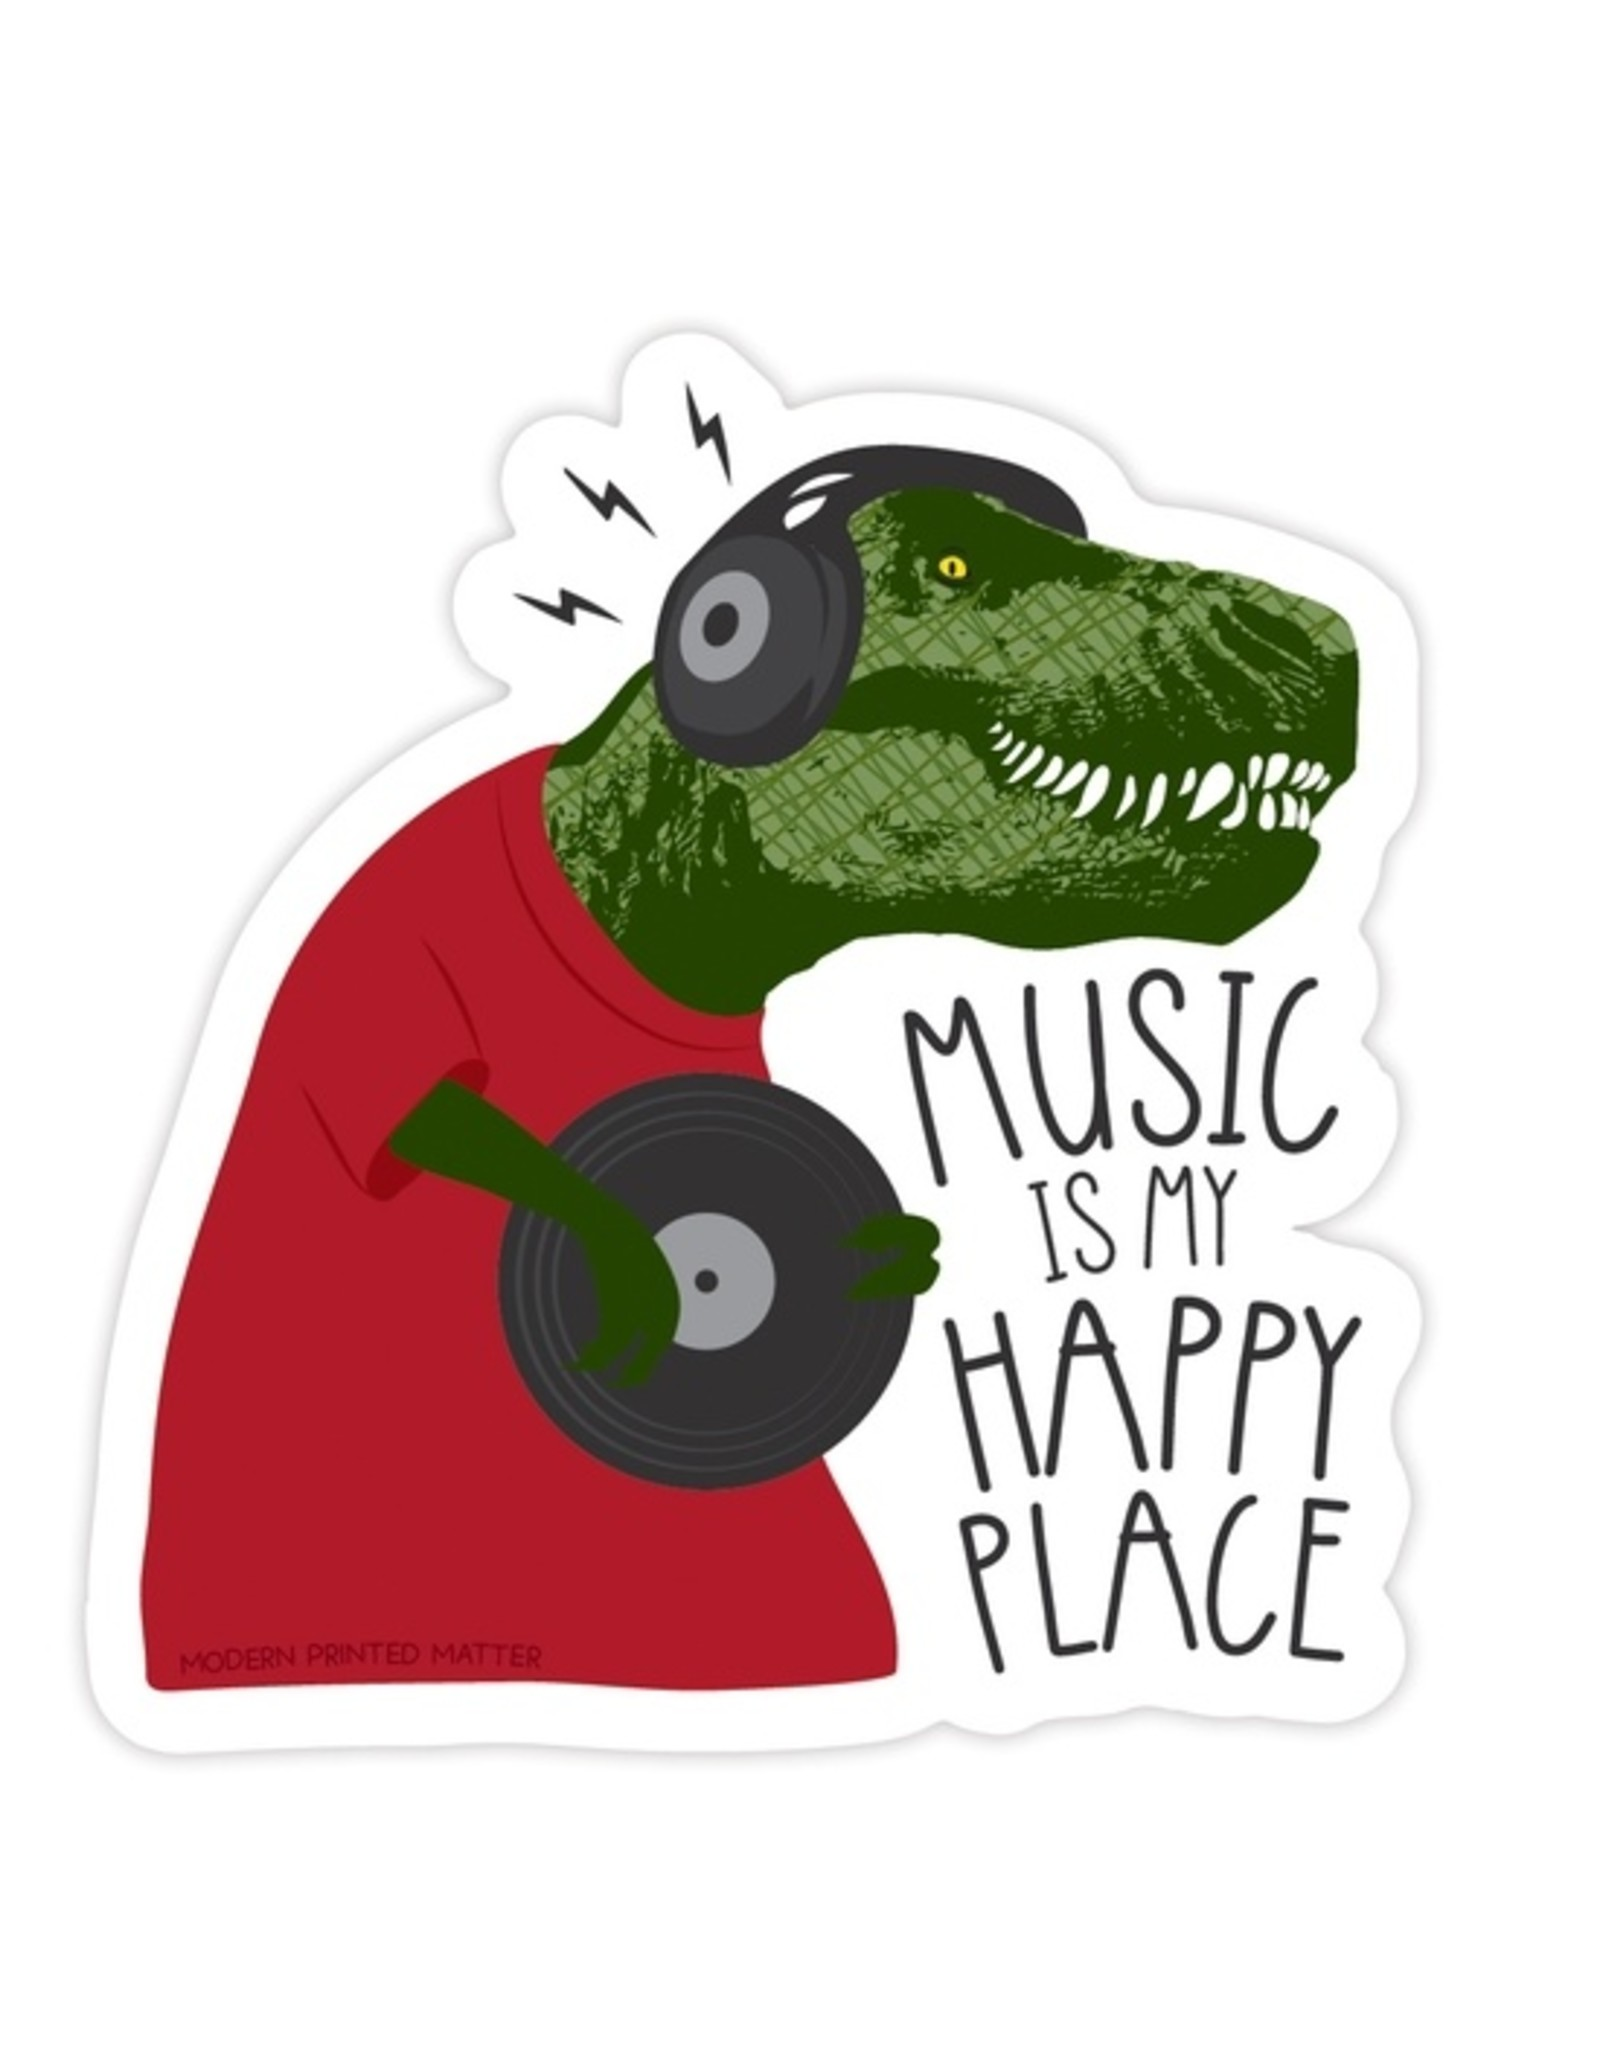 Modern Printed Matter Music Is My Happy Place Sticker